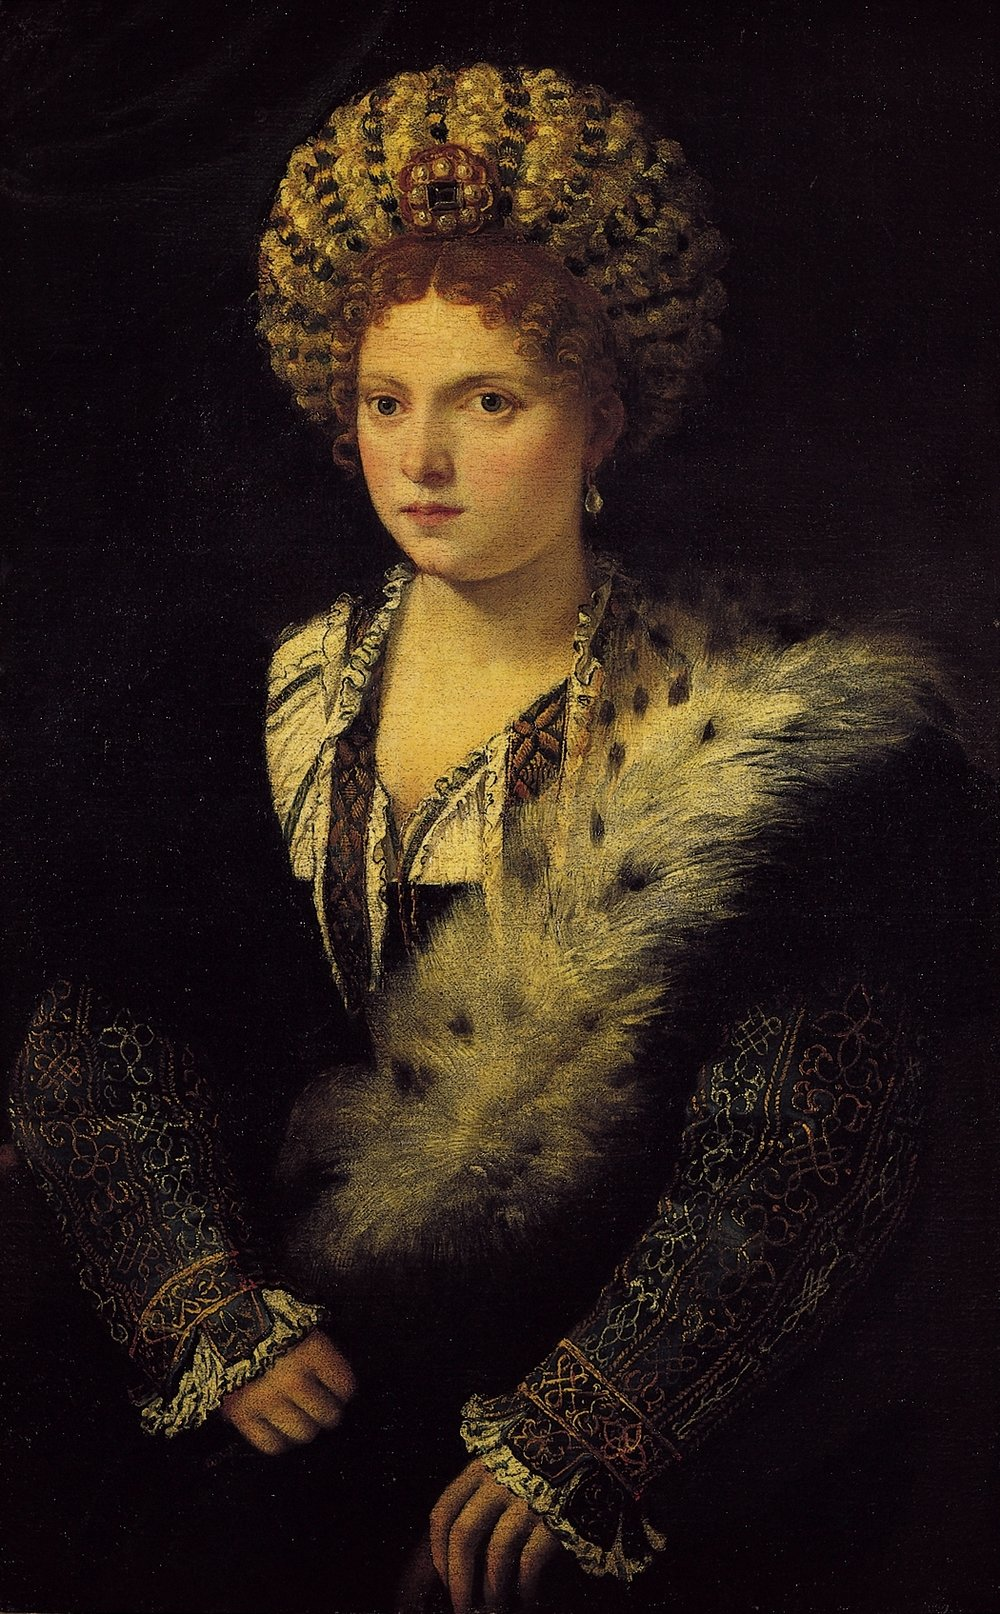 One of the women who safeguarded and transmitted the Ancient Knowledge was Isabella d'Este, Marquise of Mantova. She was one of the leading protagonists of the Italian Renaissance and she passed on the message in the best way possible for her time: she cultivated awareness through the study and creation of beauty that she herself impersonated.